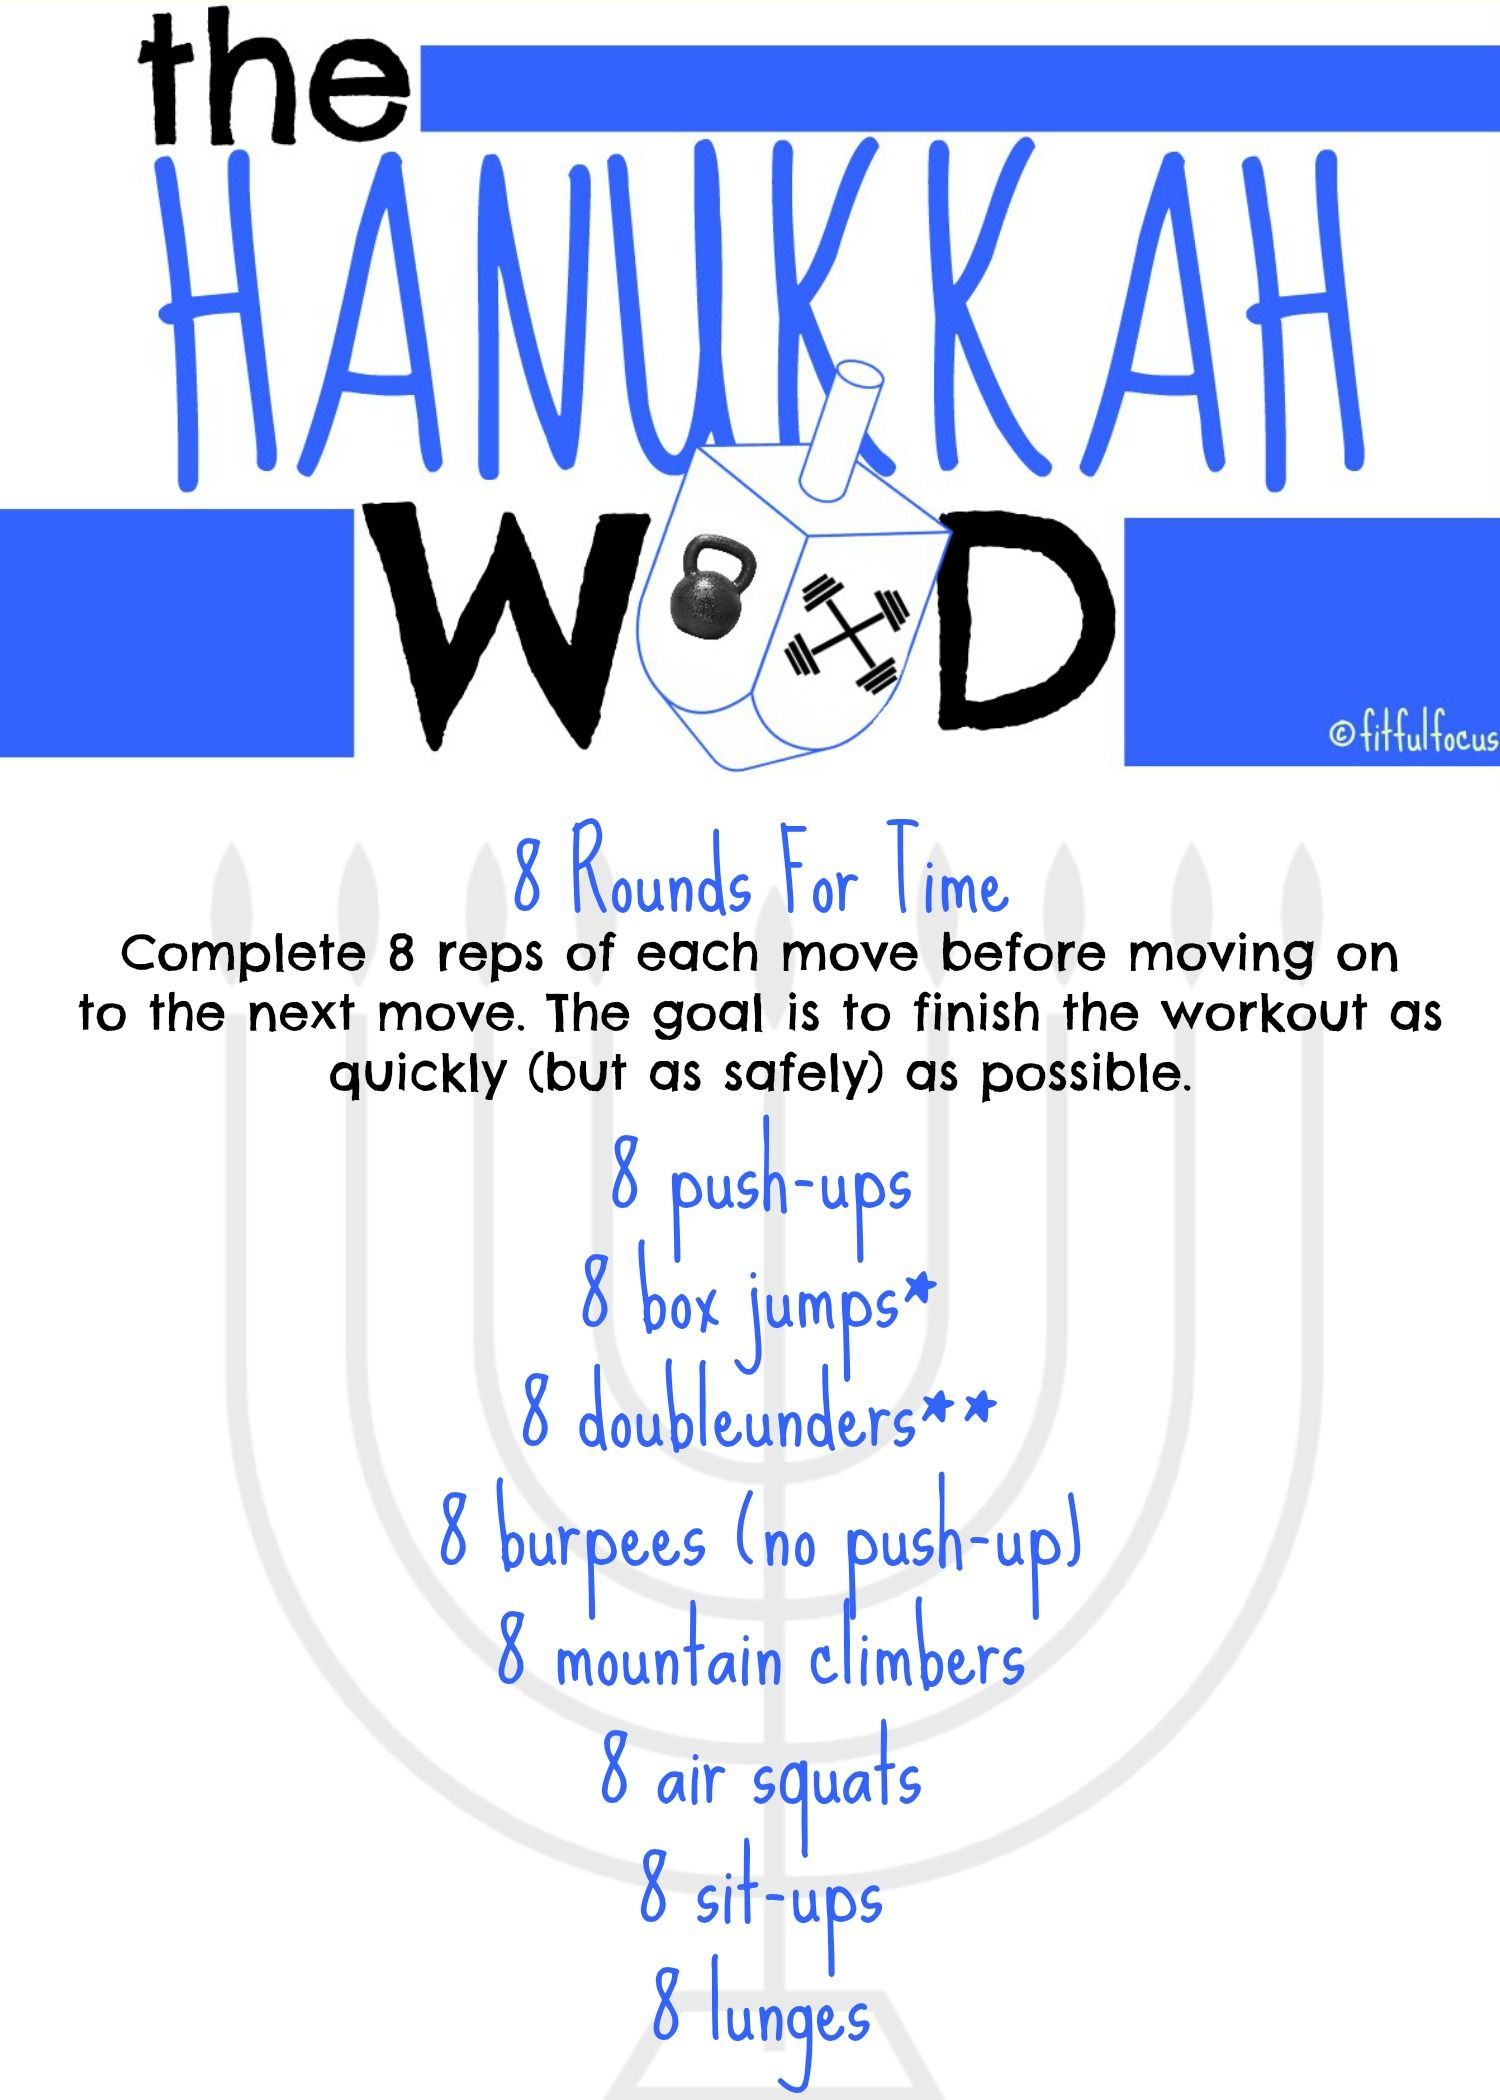 The 8 Days Of Hanukkah Workout You Definitely Need In Your Life